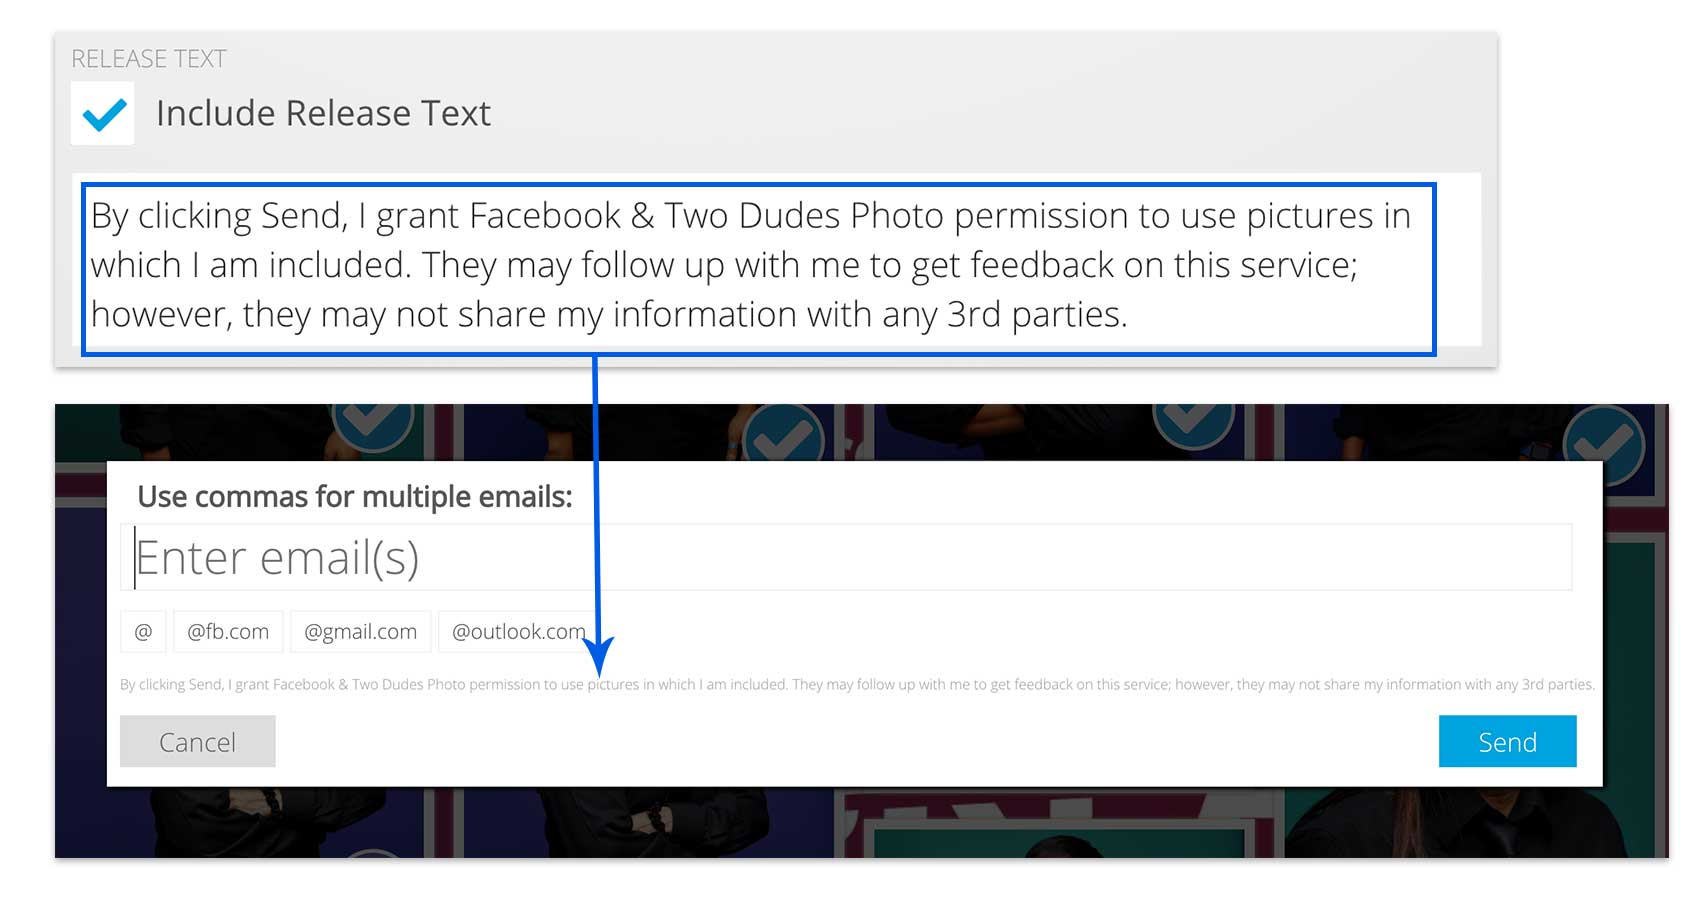 Custom release text for event photo sharing software